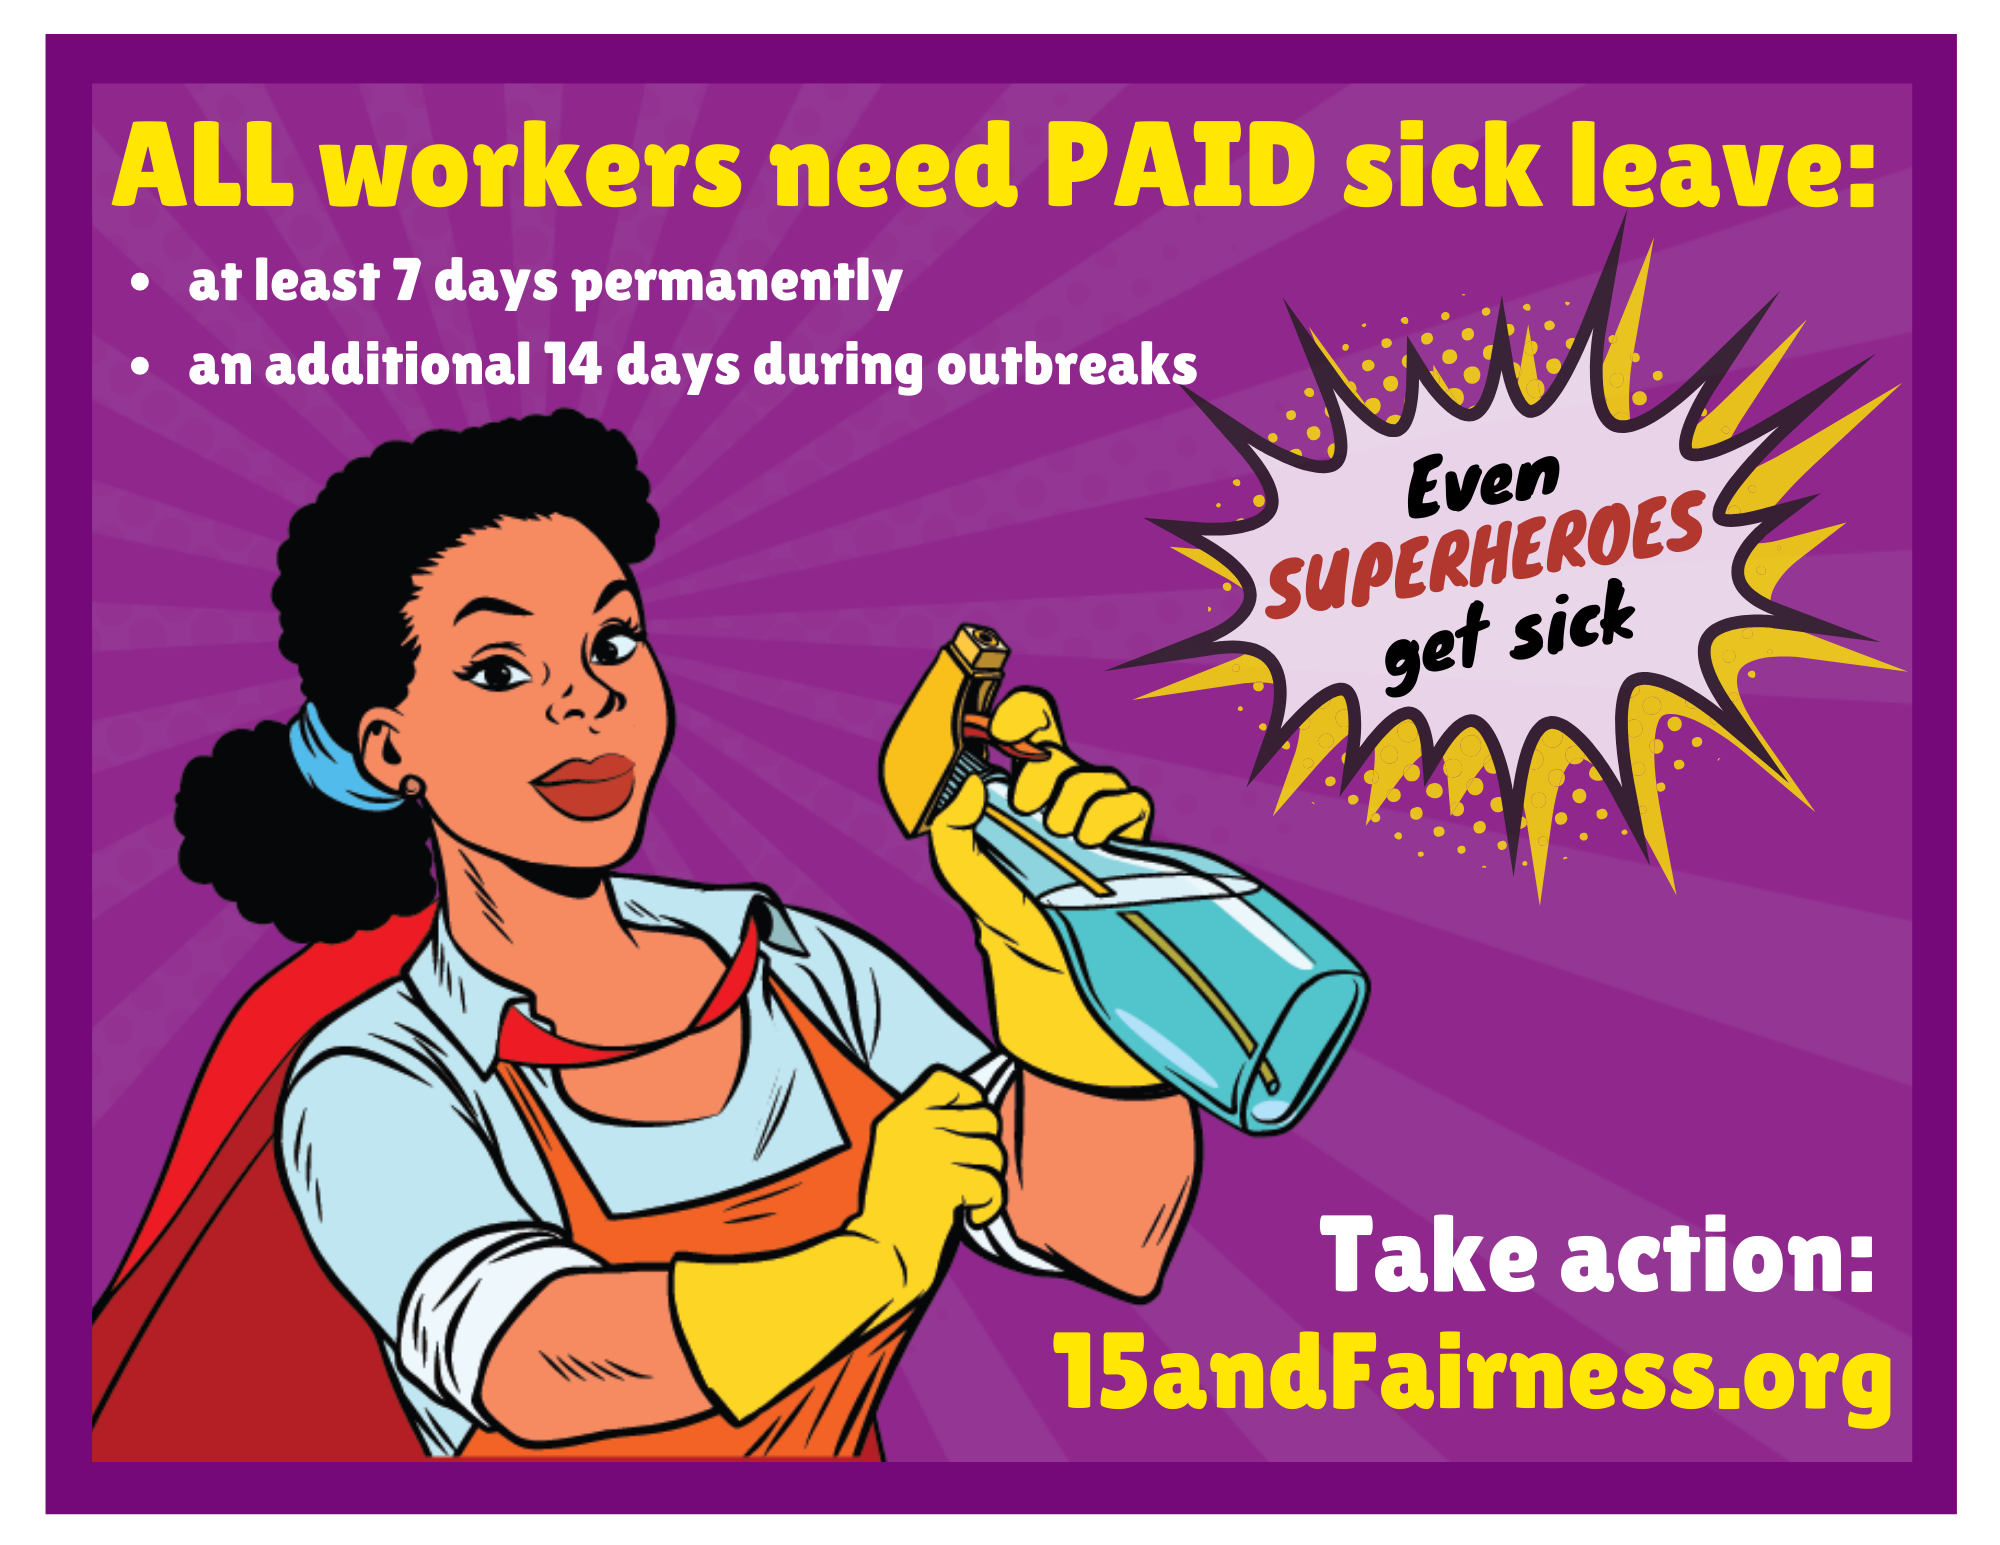 We all need paid sick days